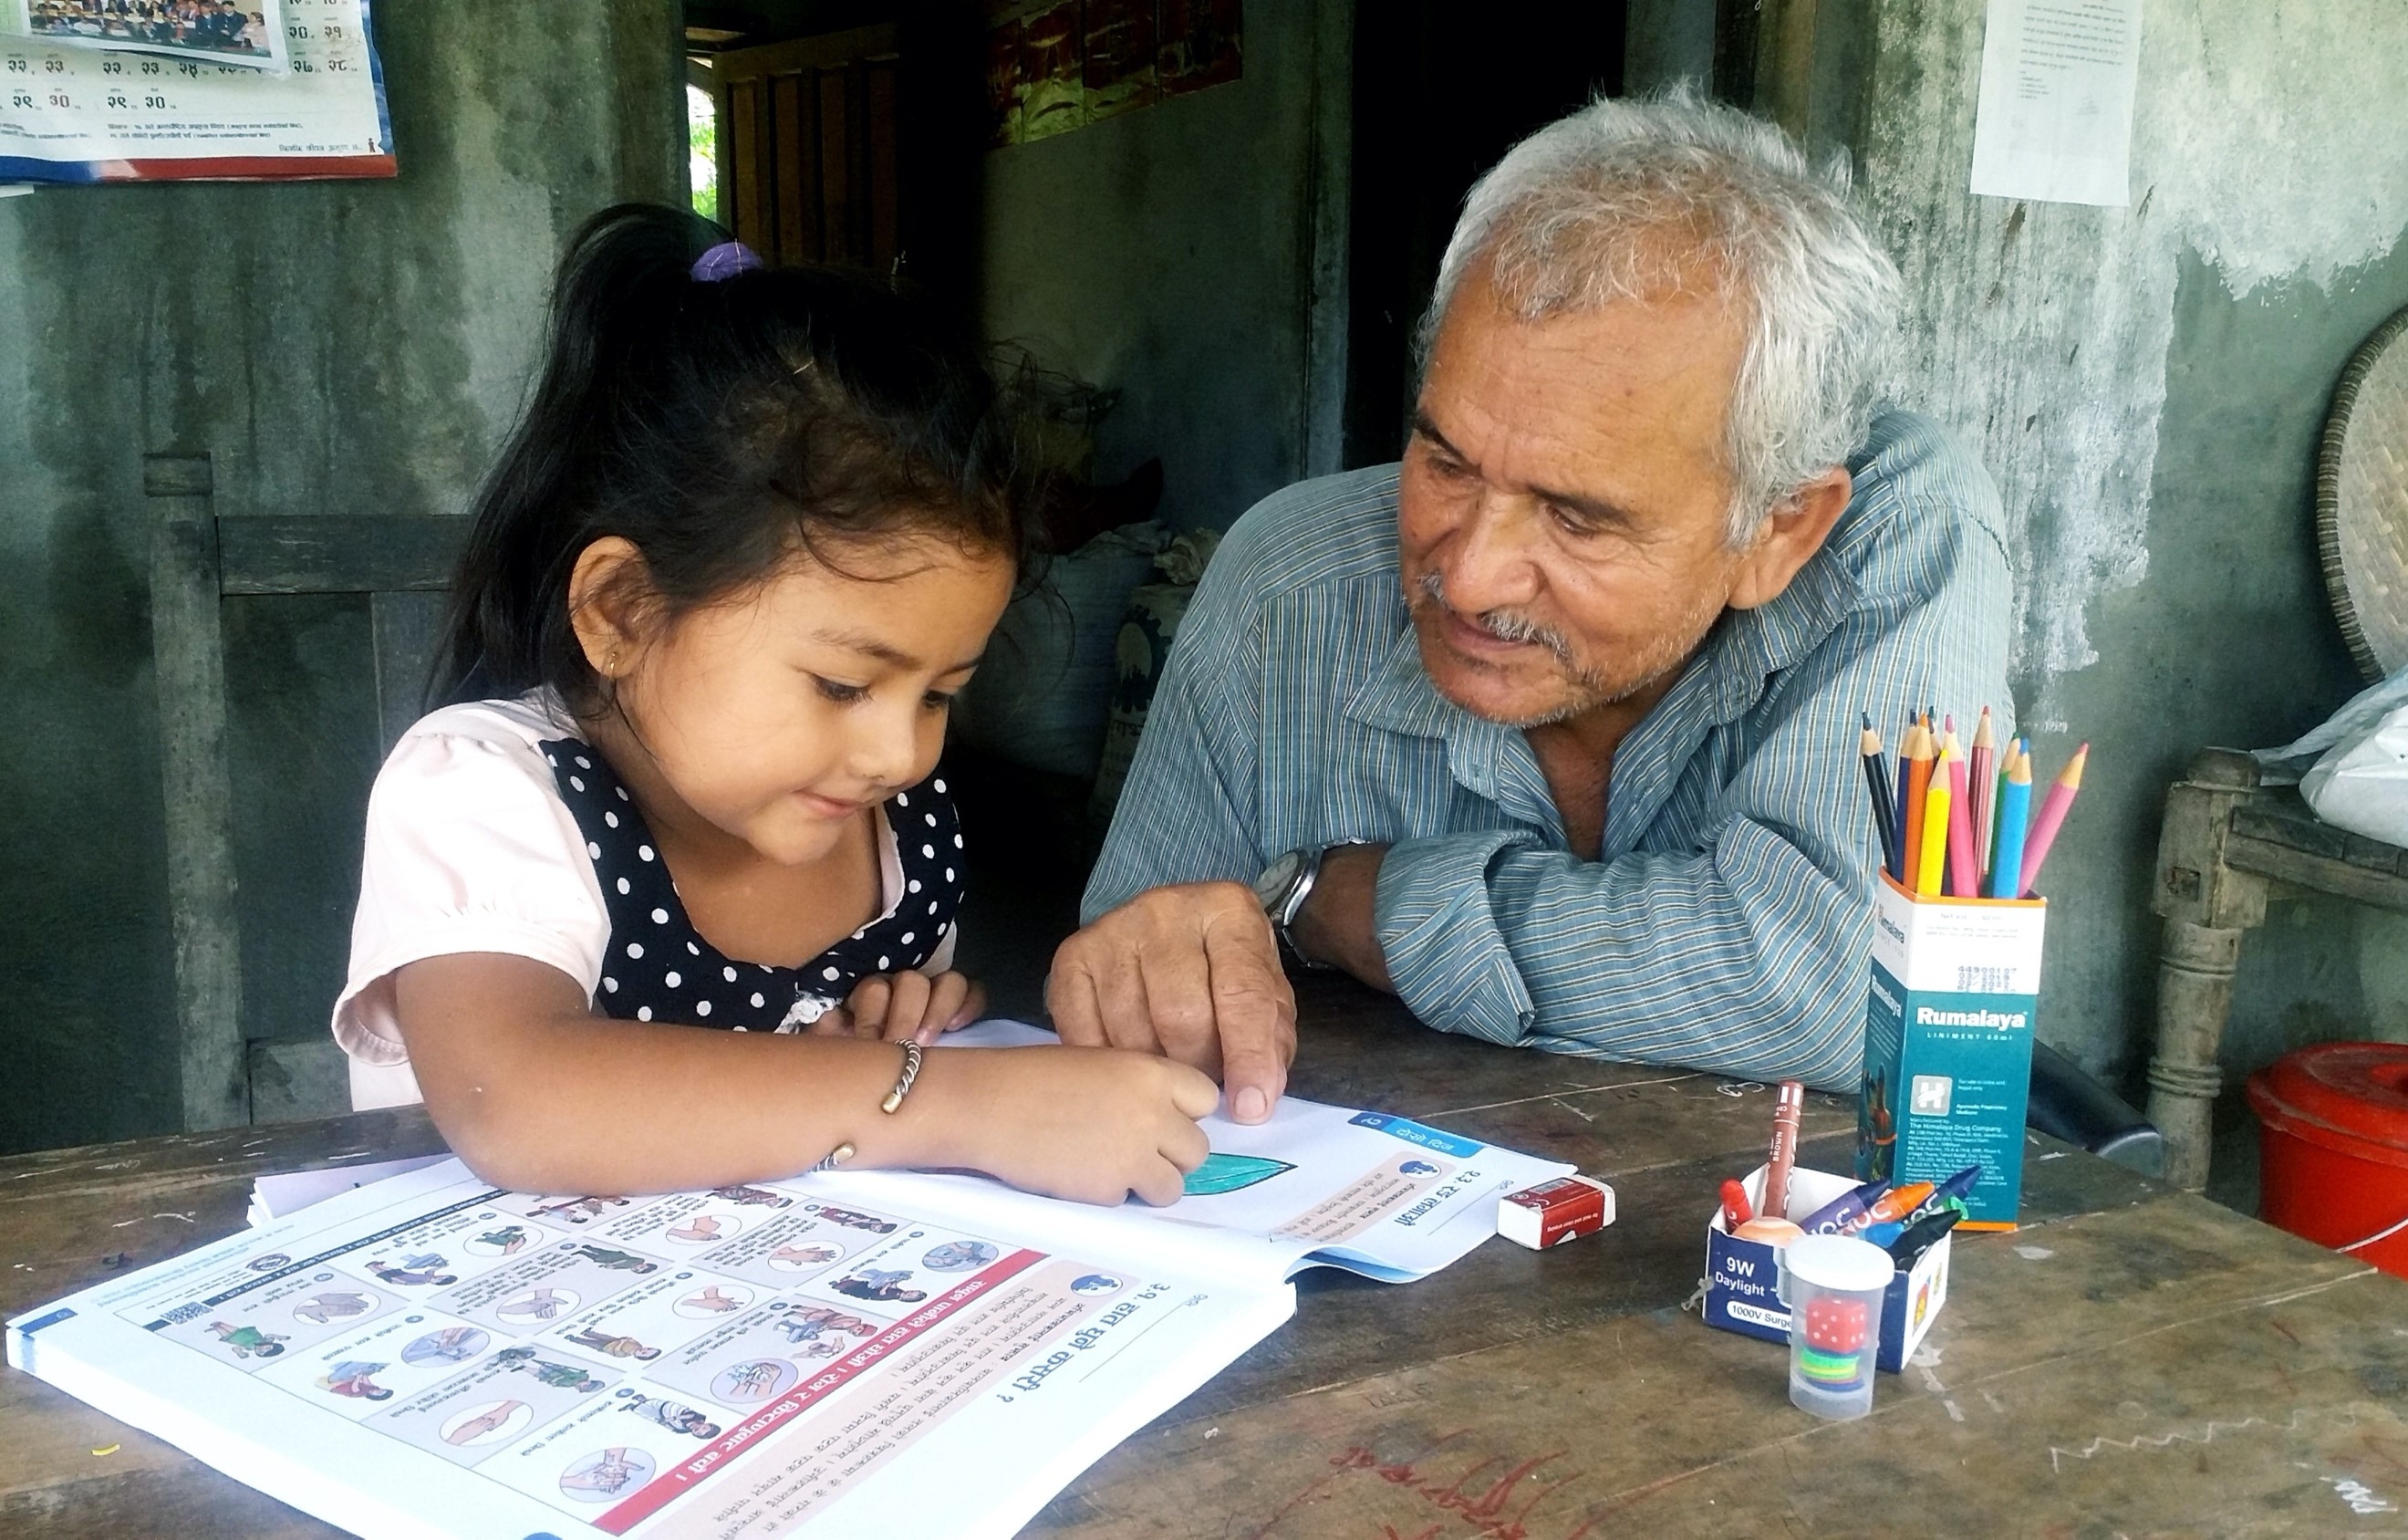 Subechha Puri, 5, does lessons with her grandfather Nandalal in their home in Kapilvastu District in western Nepal. To help the little girl continue learning at home, the family has been making use of a self-learning pack.